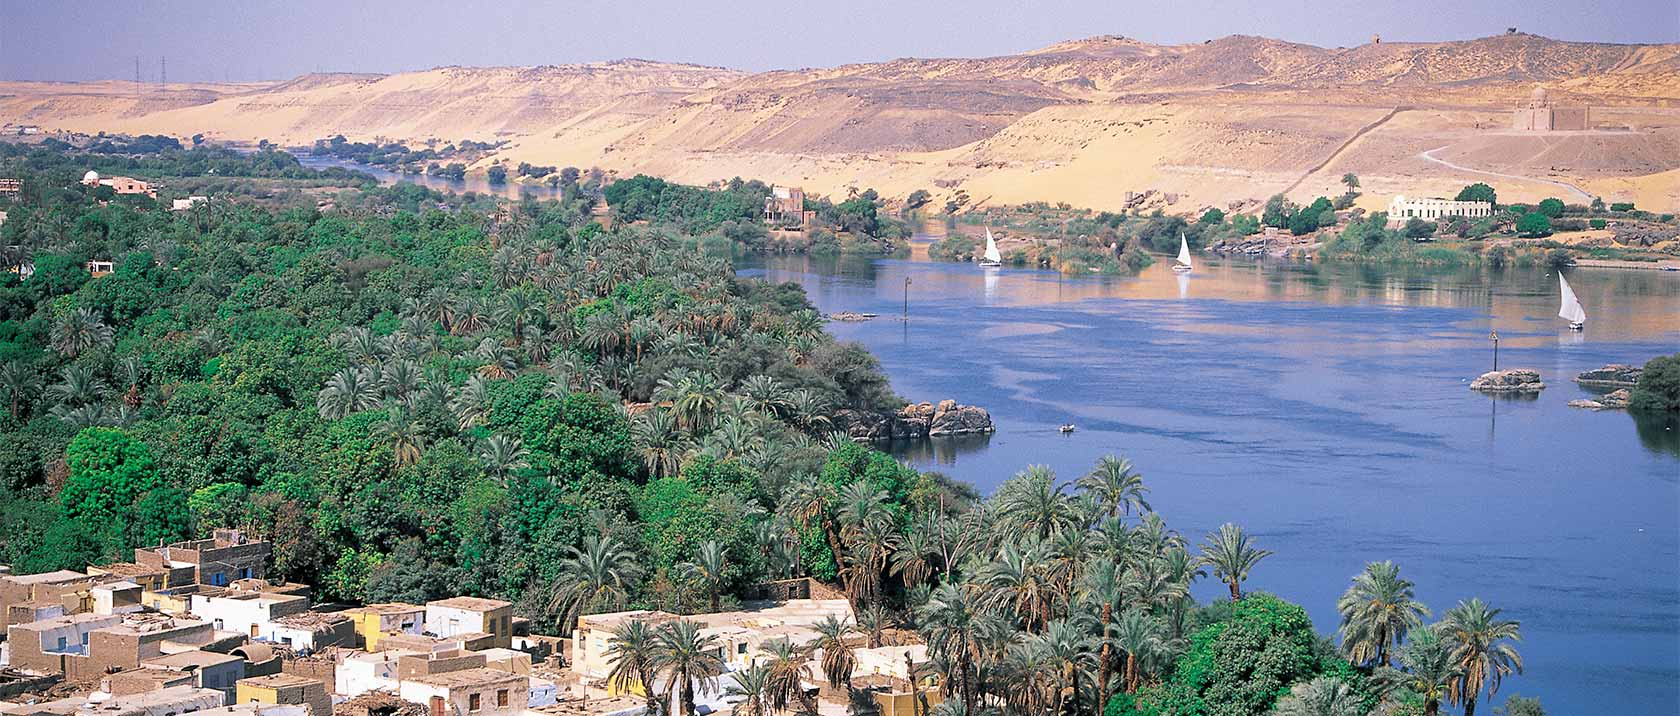 Panorama of the Nile river near Aswan